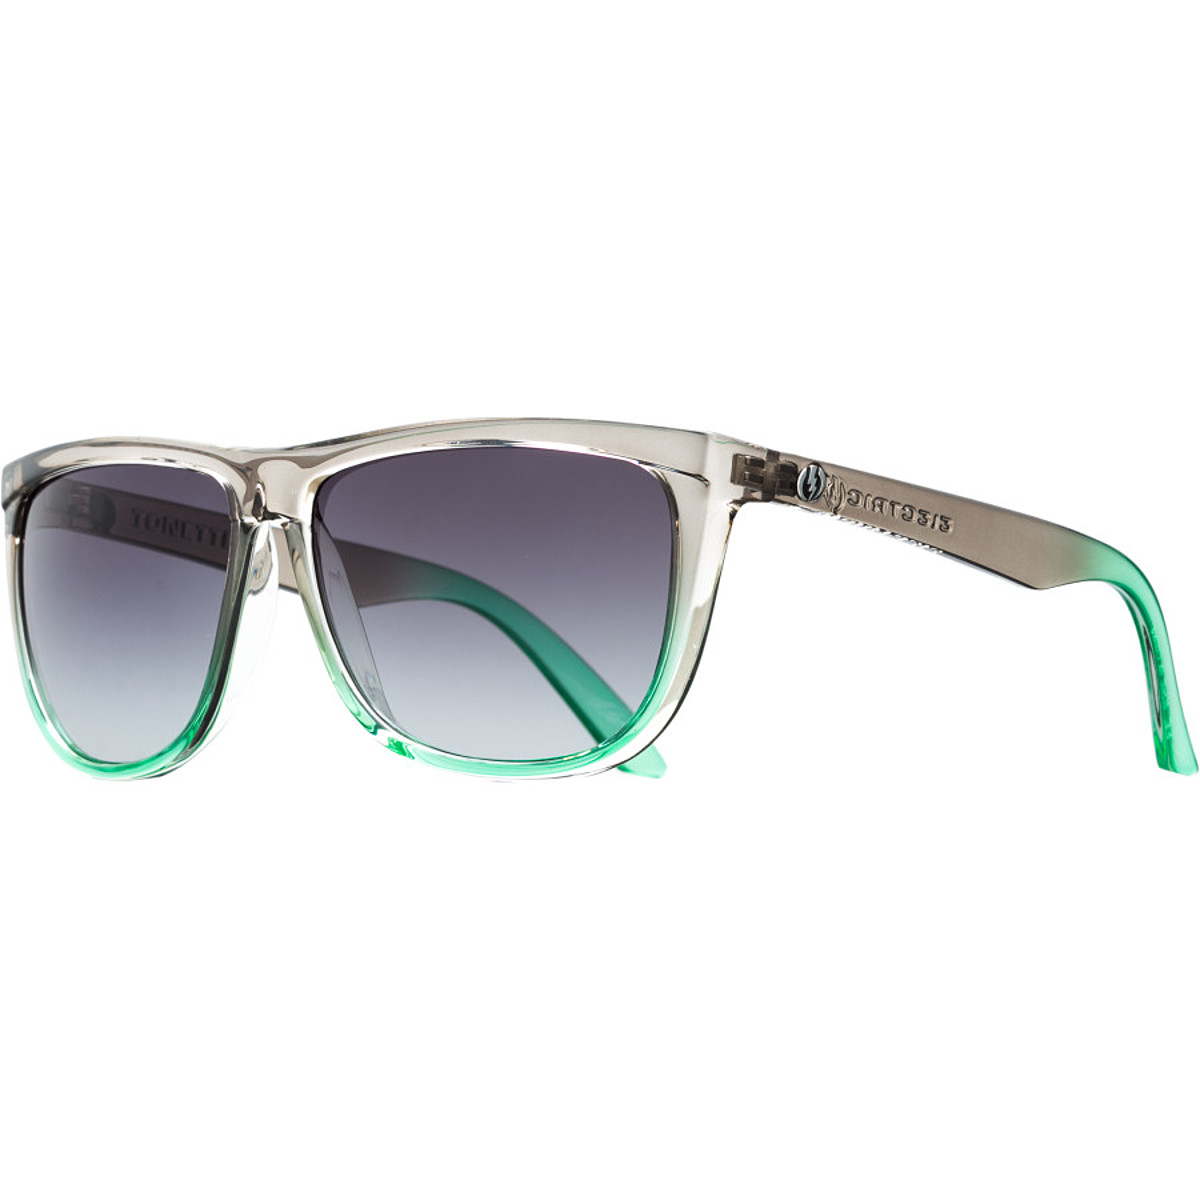 photo: Electric Tonette sport sunglass